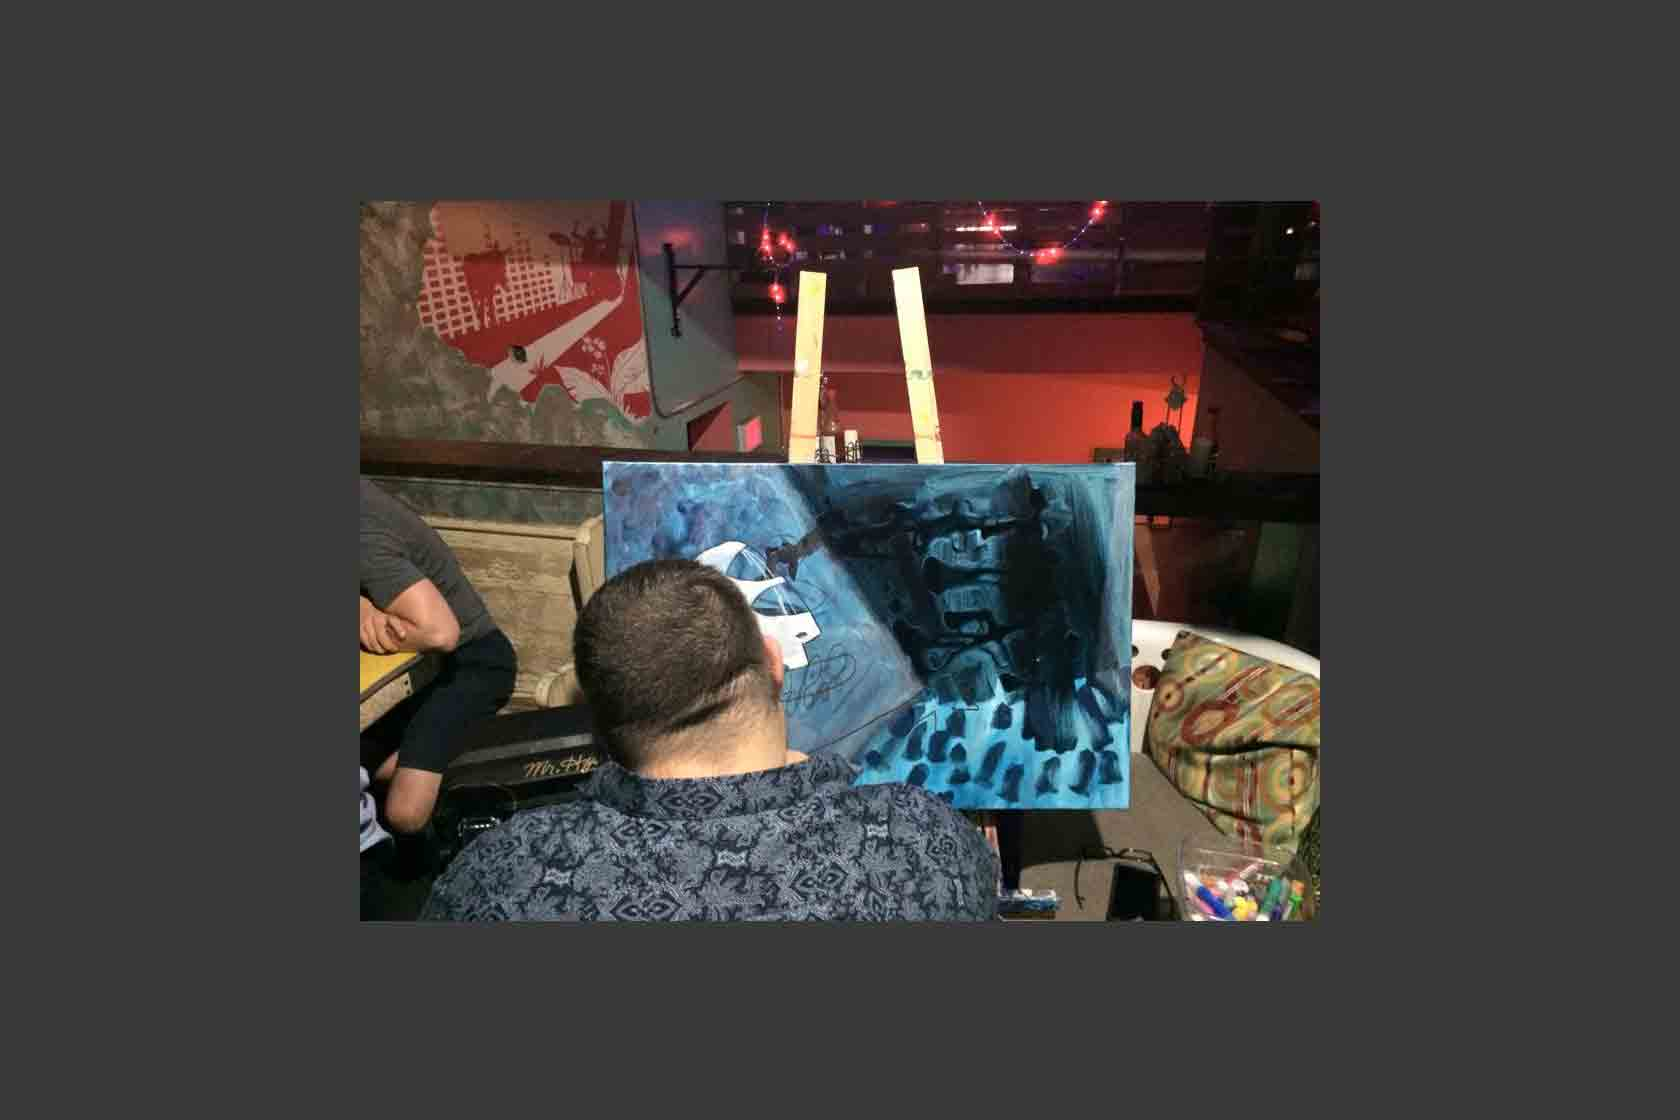 Live Painting Performance, Pacific Junction Hotel, Aug 26 2015